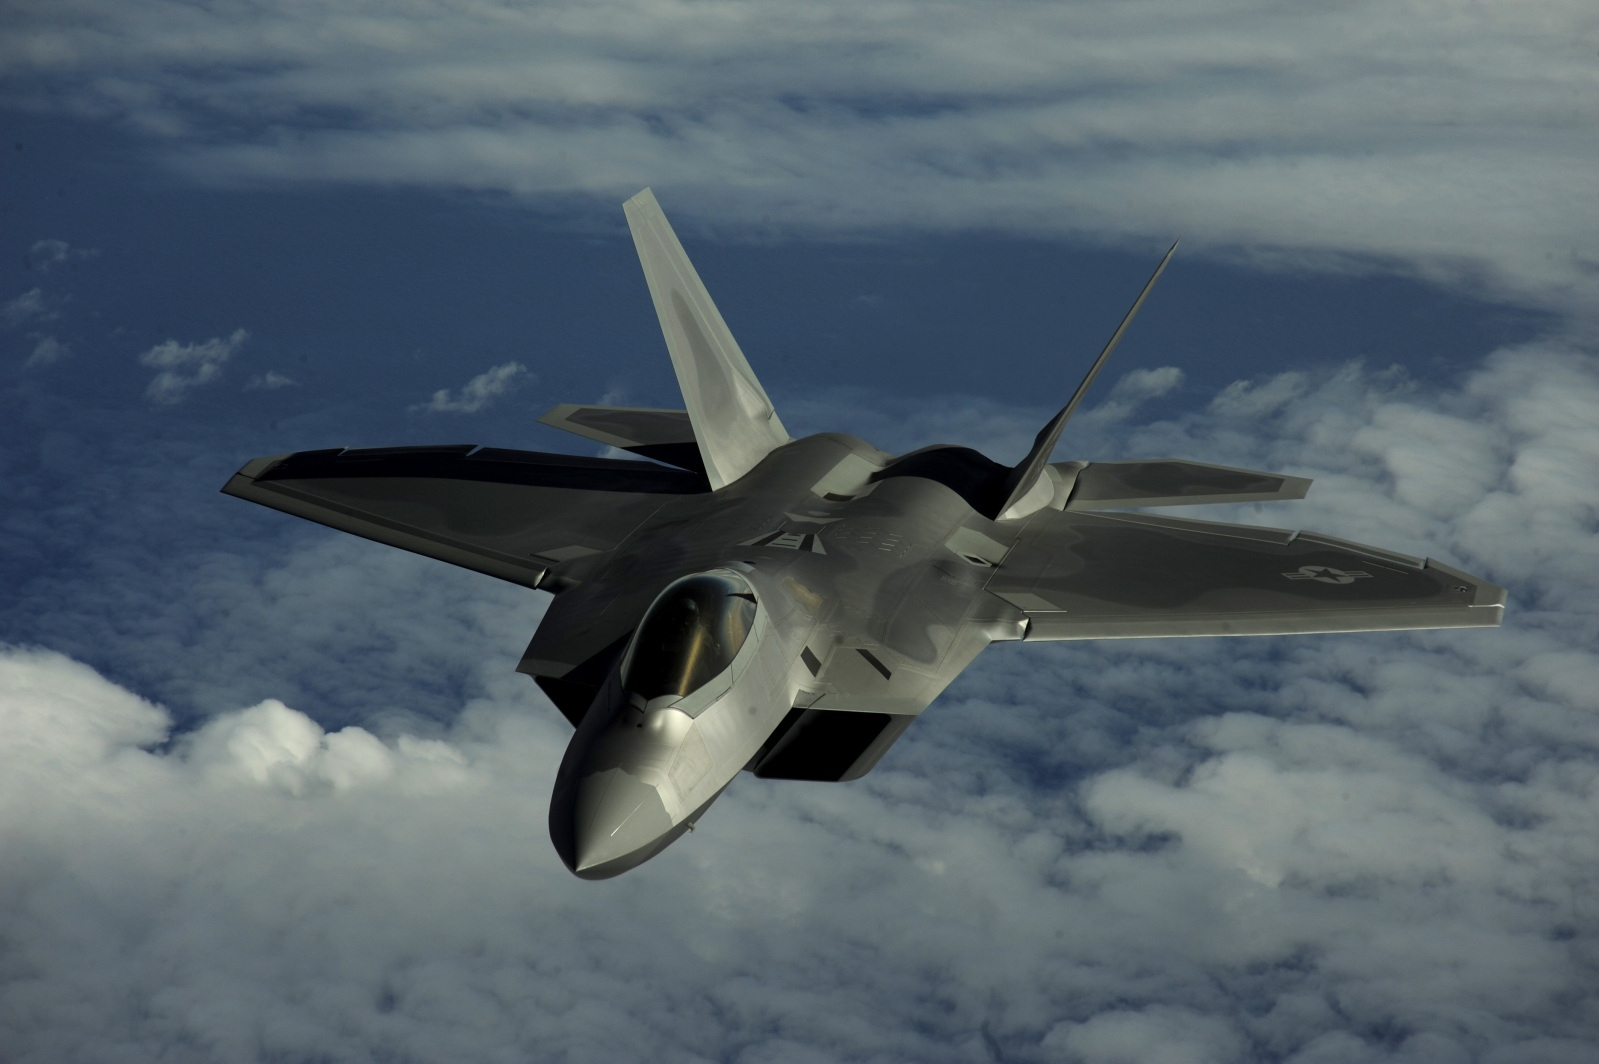 Free Download 22raptor F 22 Raptor Wallpaper 1599x1064 For Your